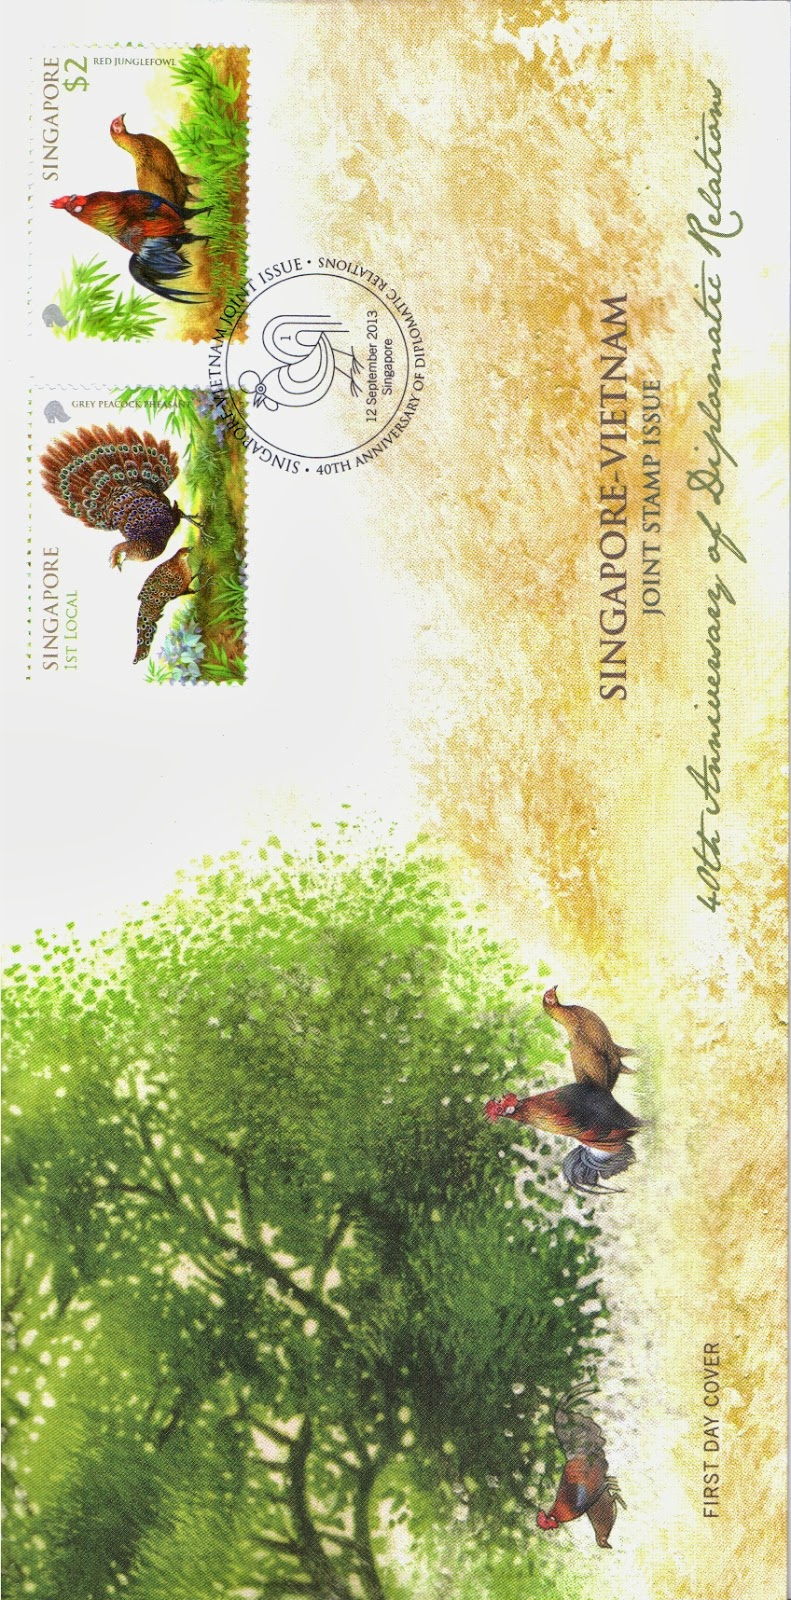 Pre-cancelled First Day Cover affixed with complete set of stamps (S$3.05*)